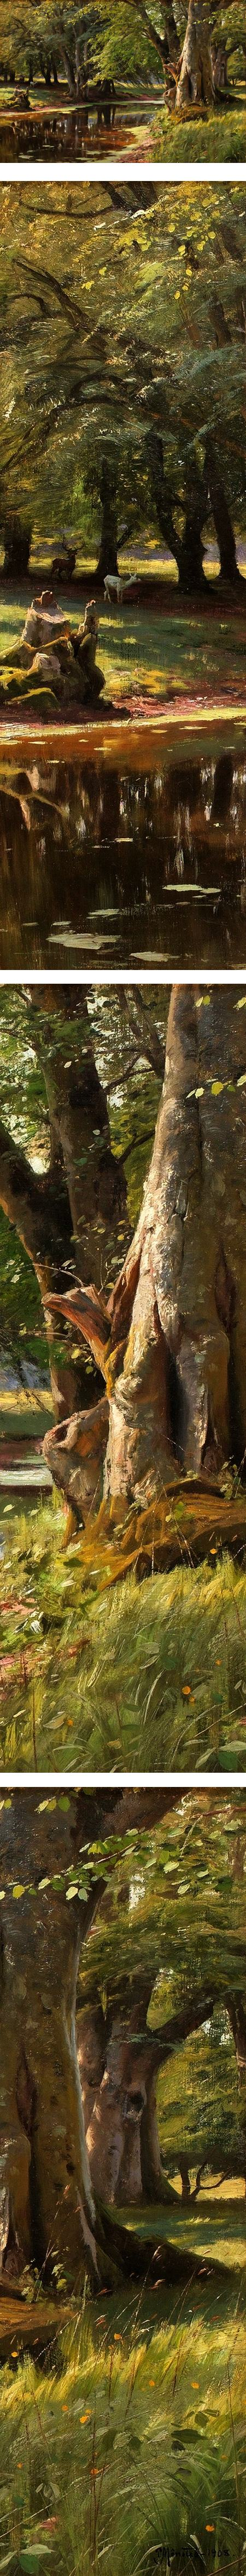 Skogslandskap (forest landscape), Peder Mork Monsted